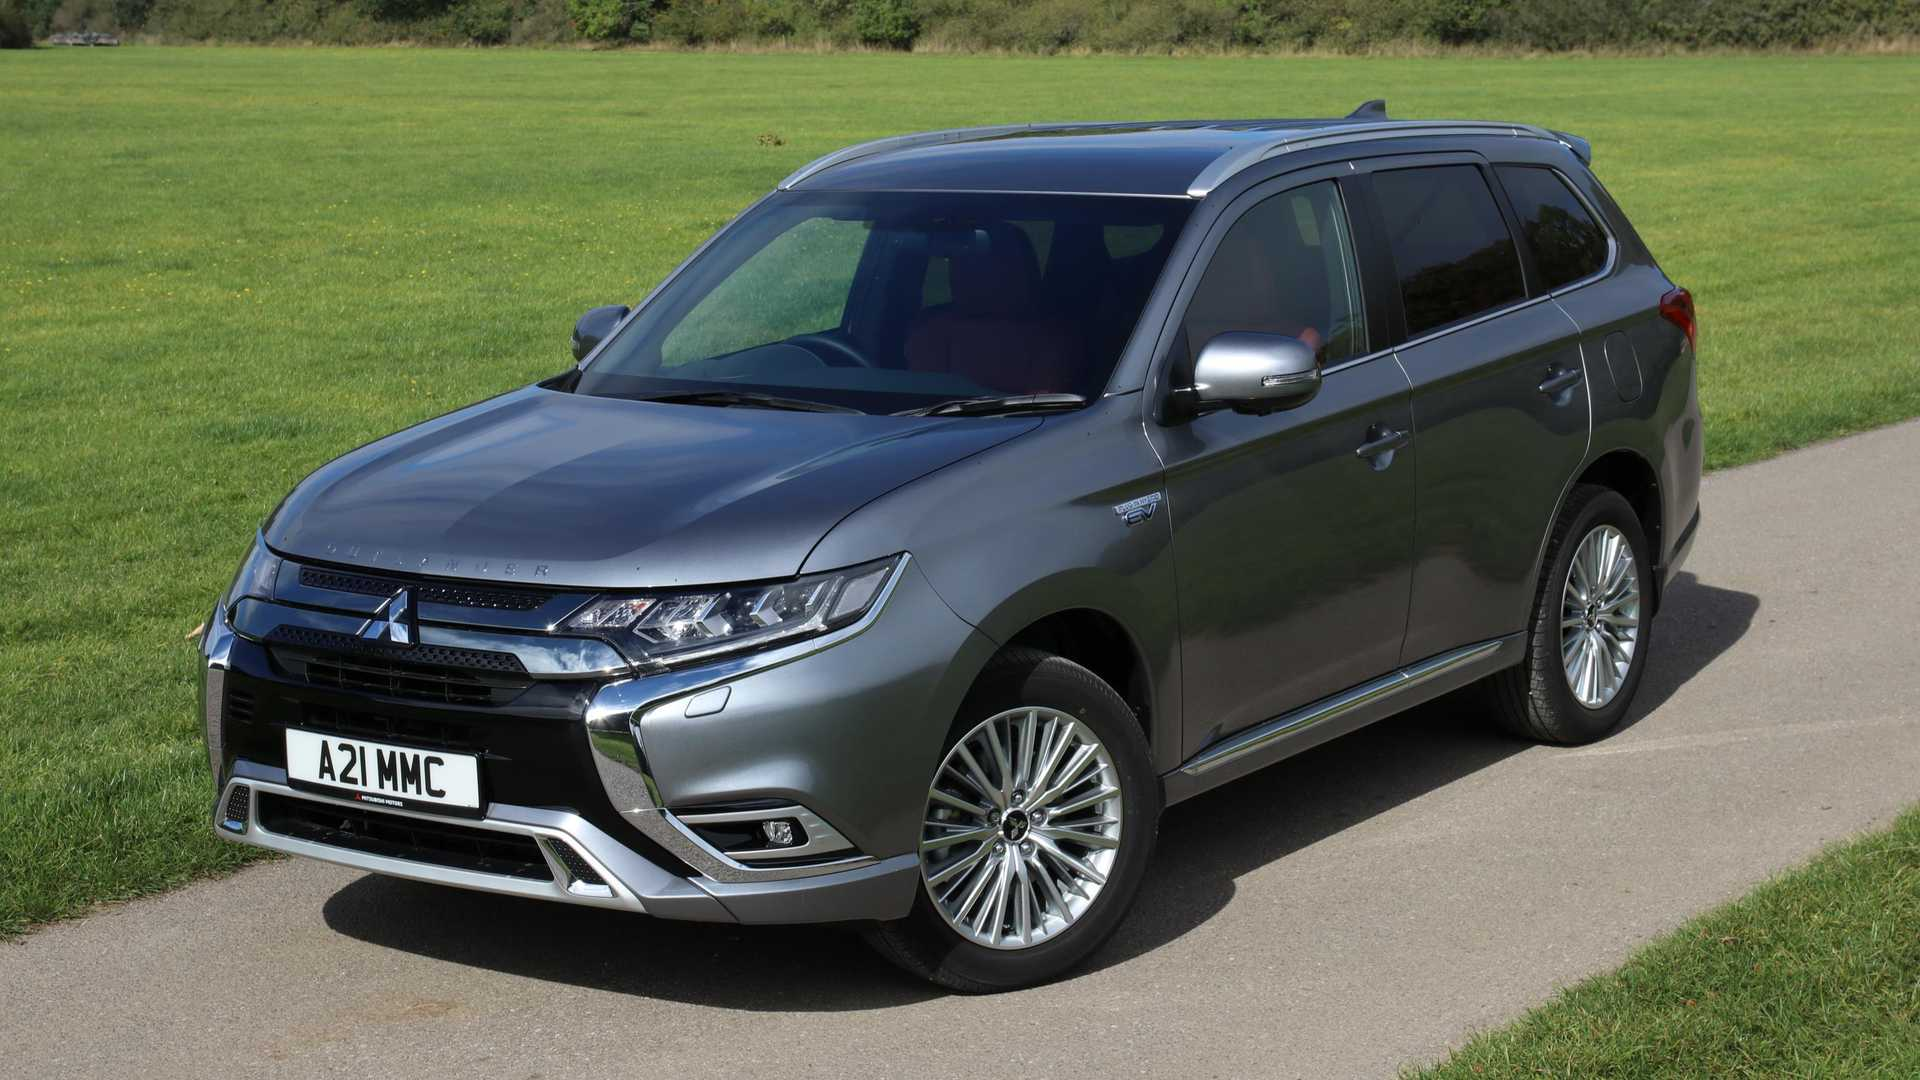 Mitsubishi Outlander Phev Sells Well In Uk Even Without